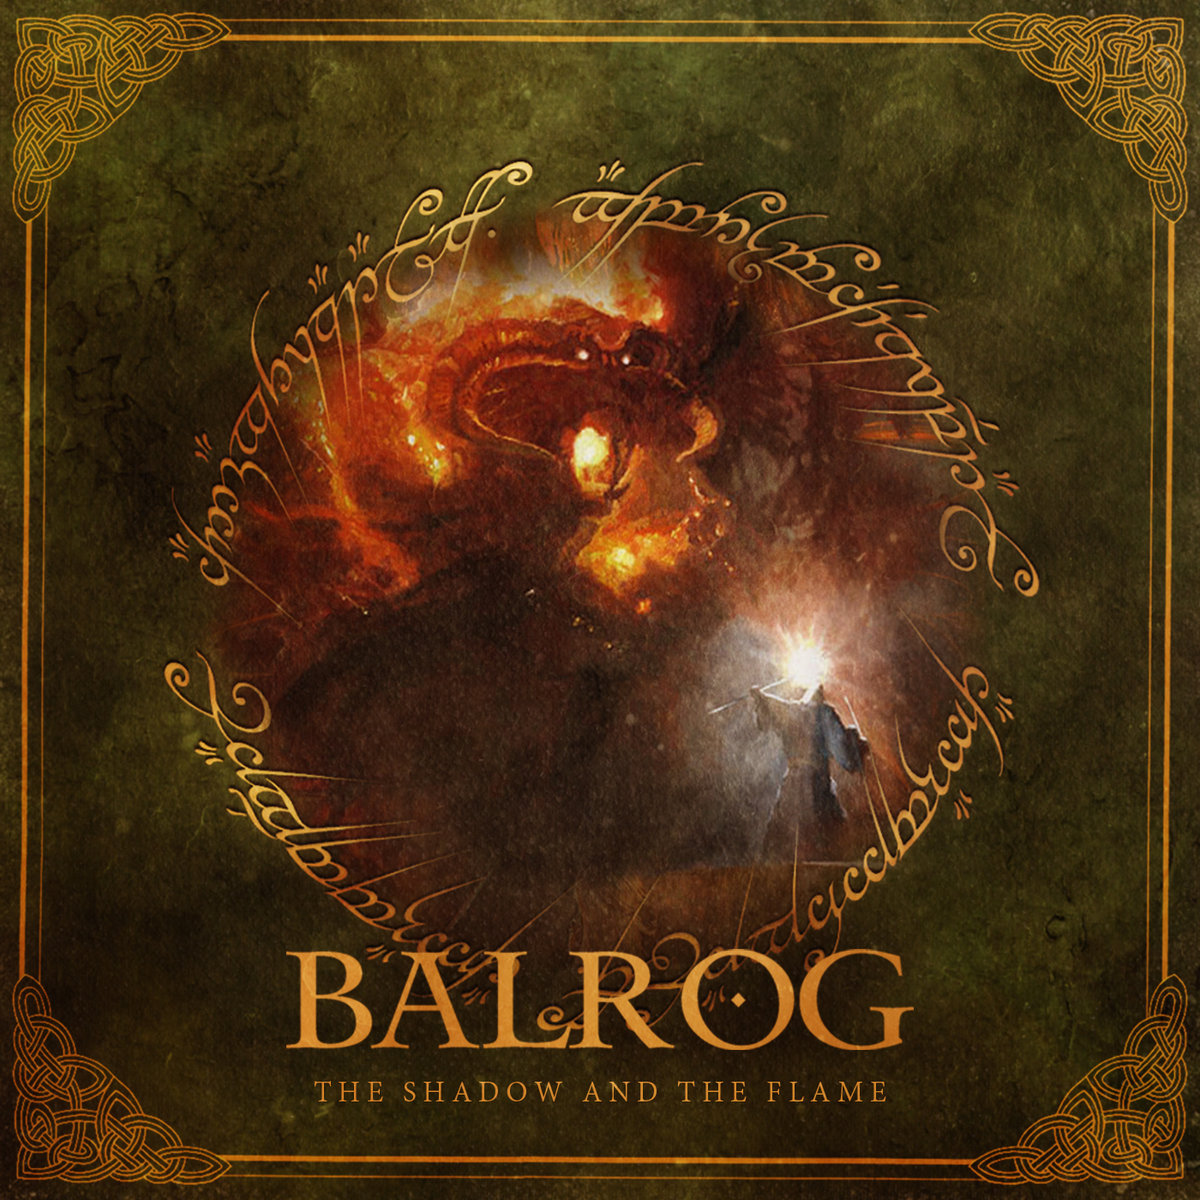 balrog Dungeon synth music JRR Tolkien Lord Of The Rings Fantasy